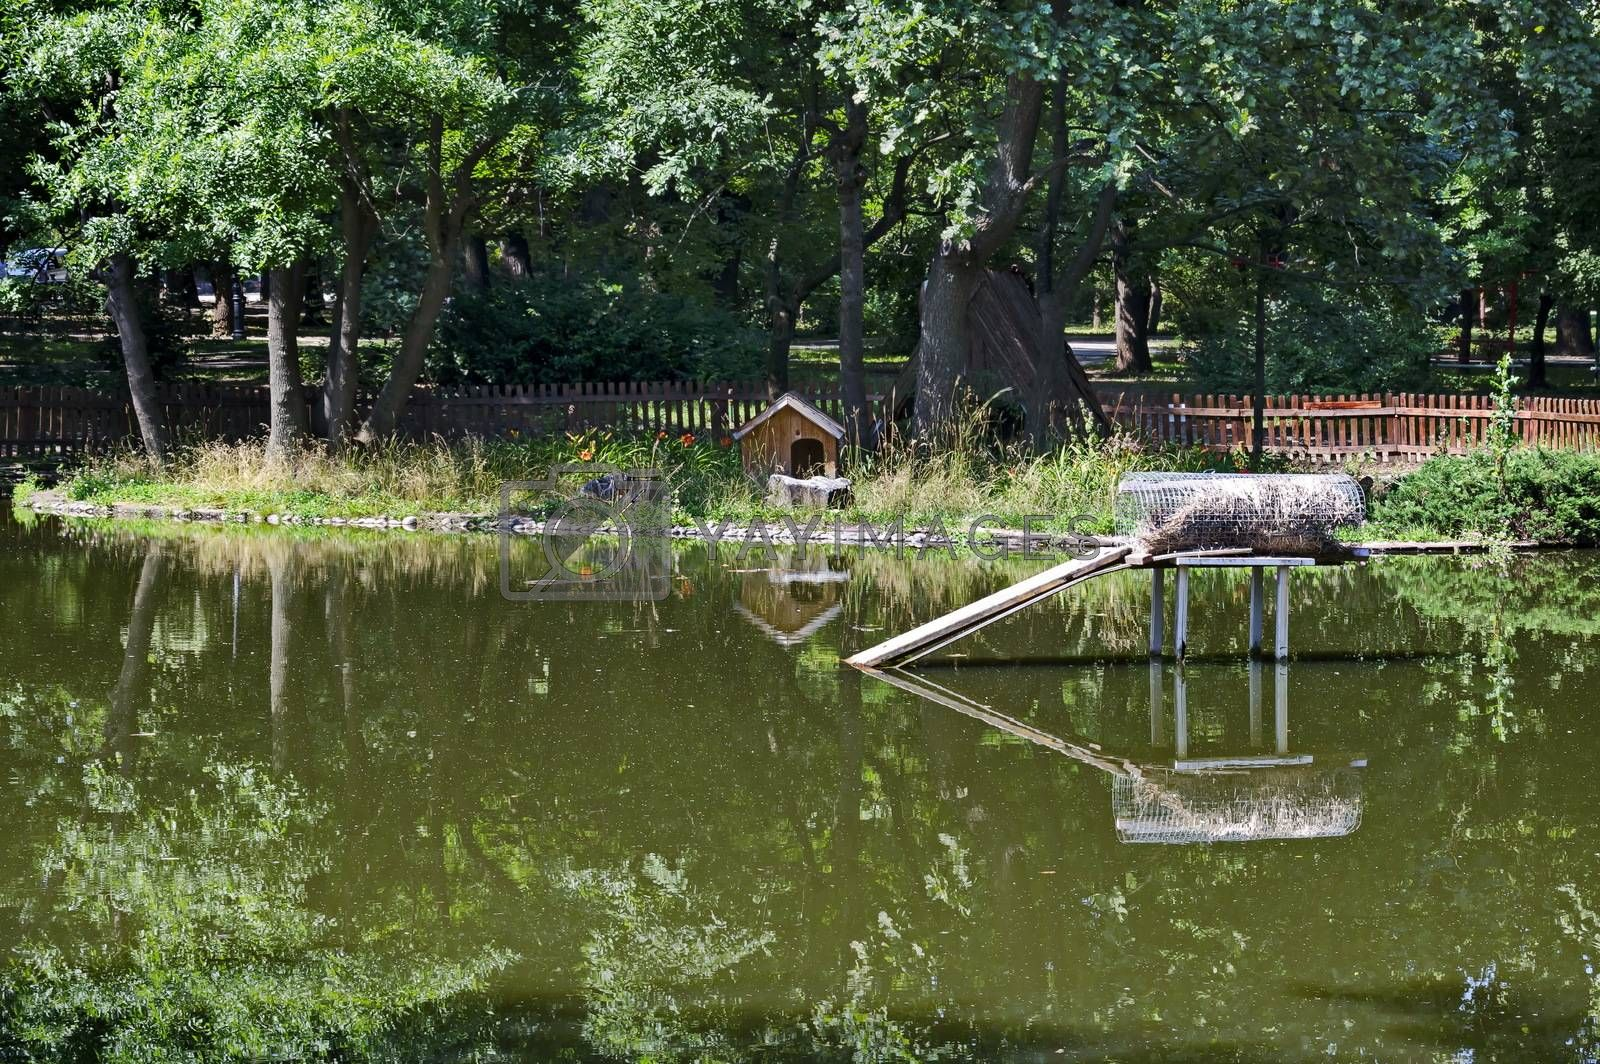 A small house built into the lake and nesting place for ducks in the city garden, Sofia, Bulgaria